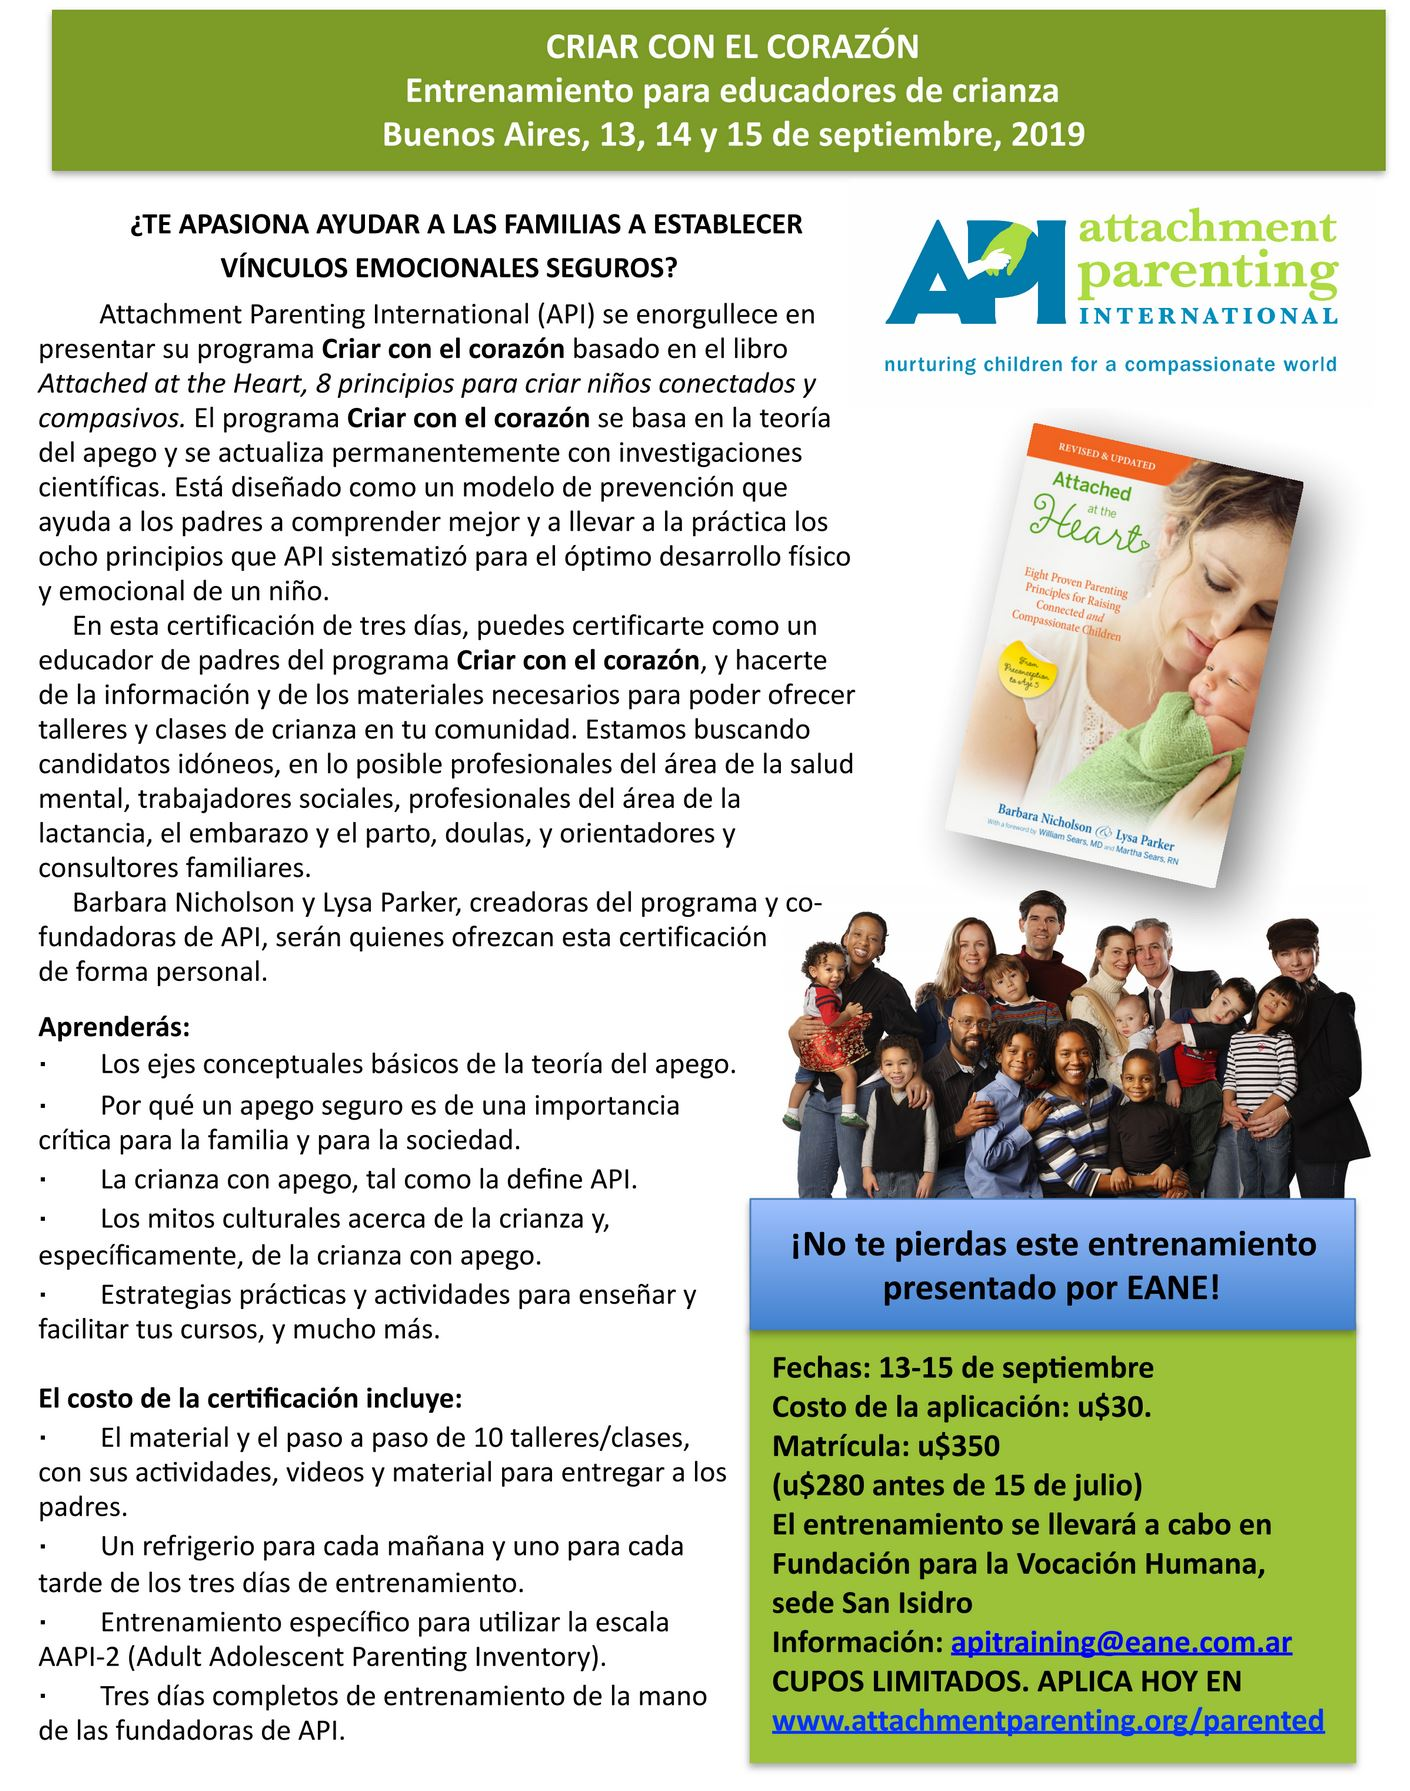 ¿QUERÉS SER EDUCADOR DE MADRES/PADRES en tu comunidad? Attachment Parenting International